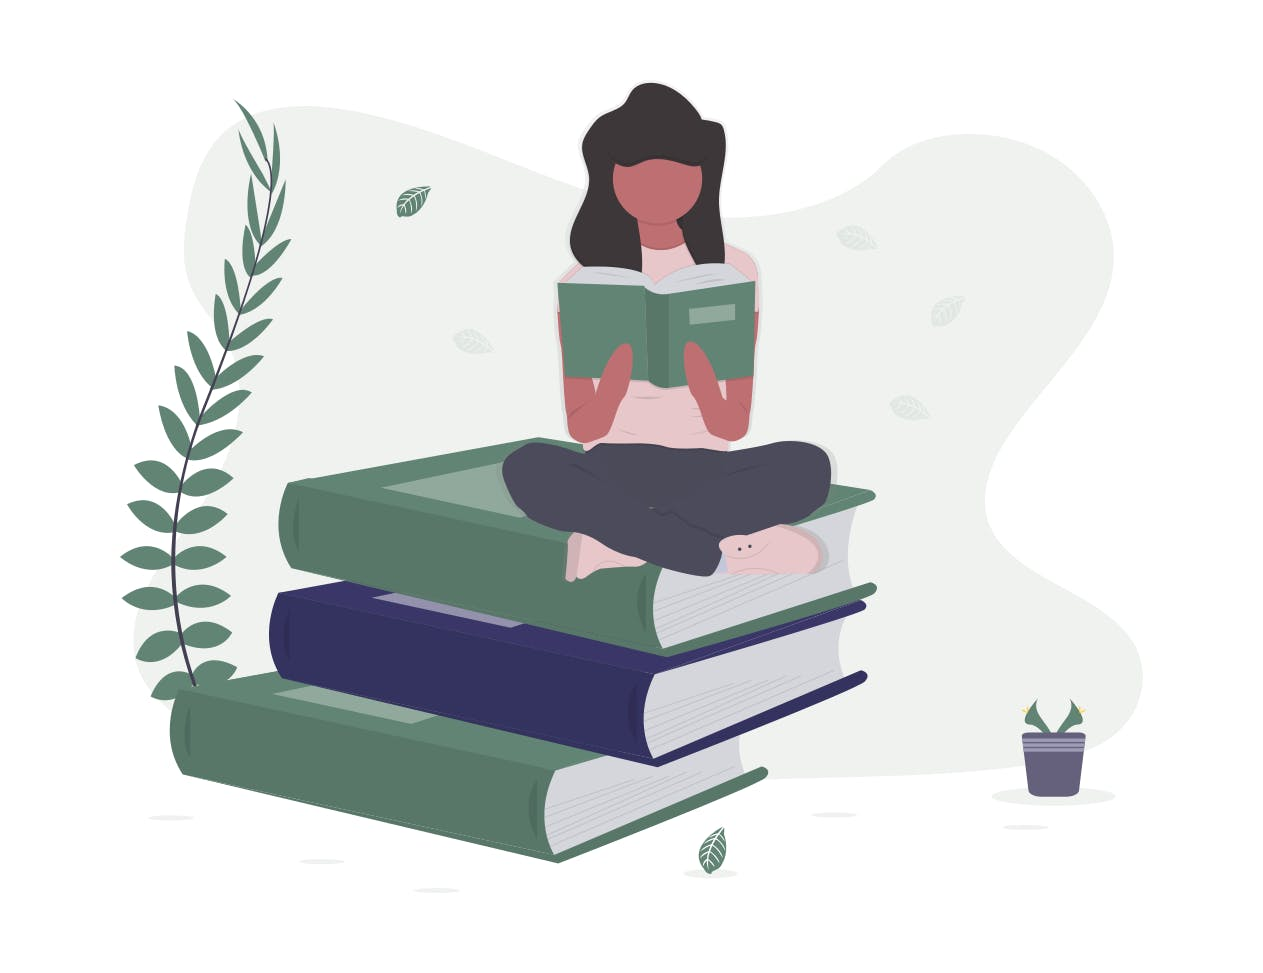 undraw_book_lover_mkck.png